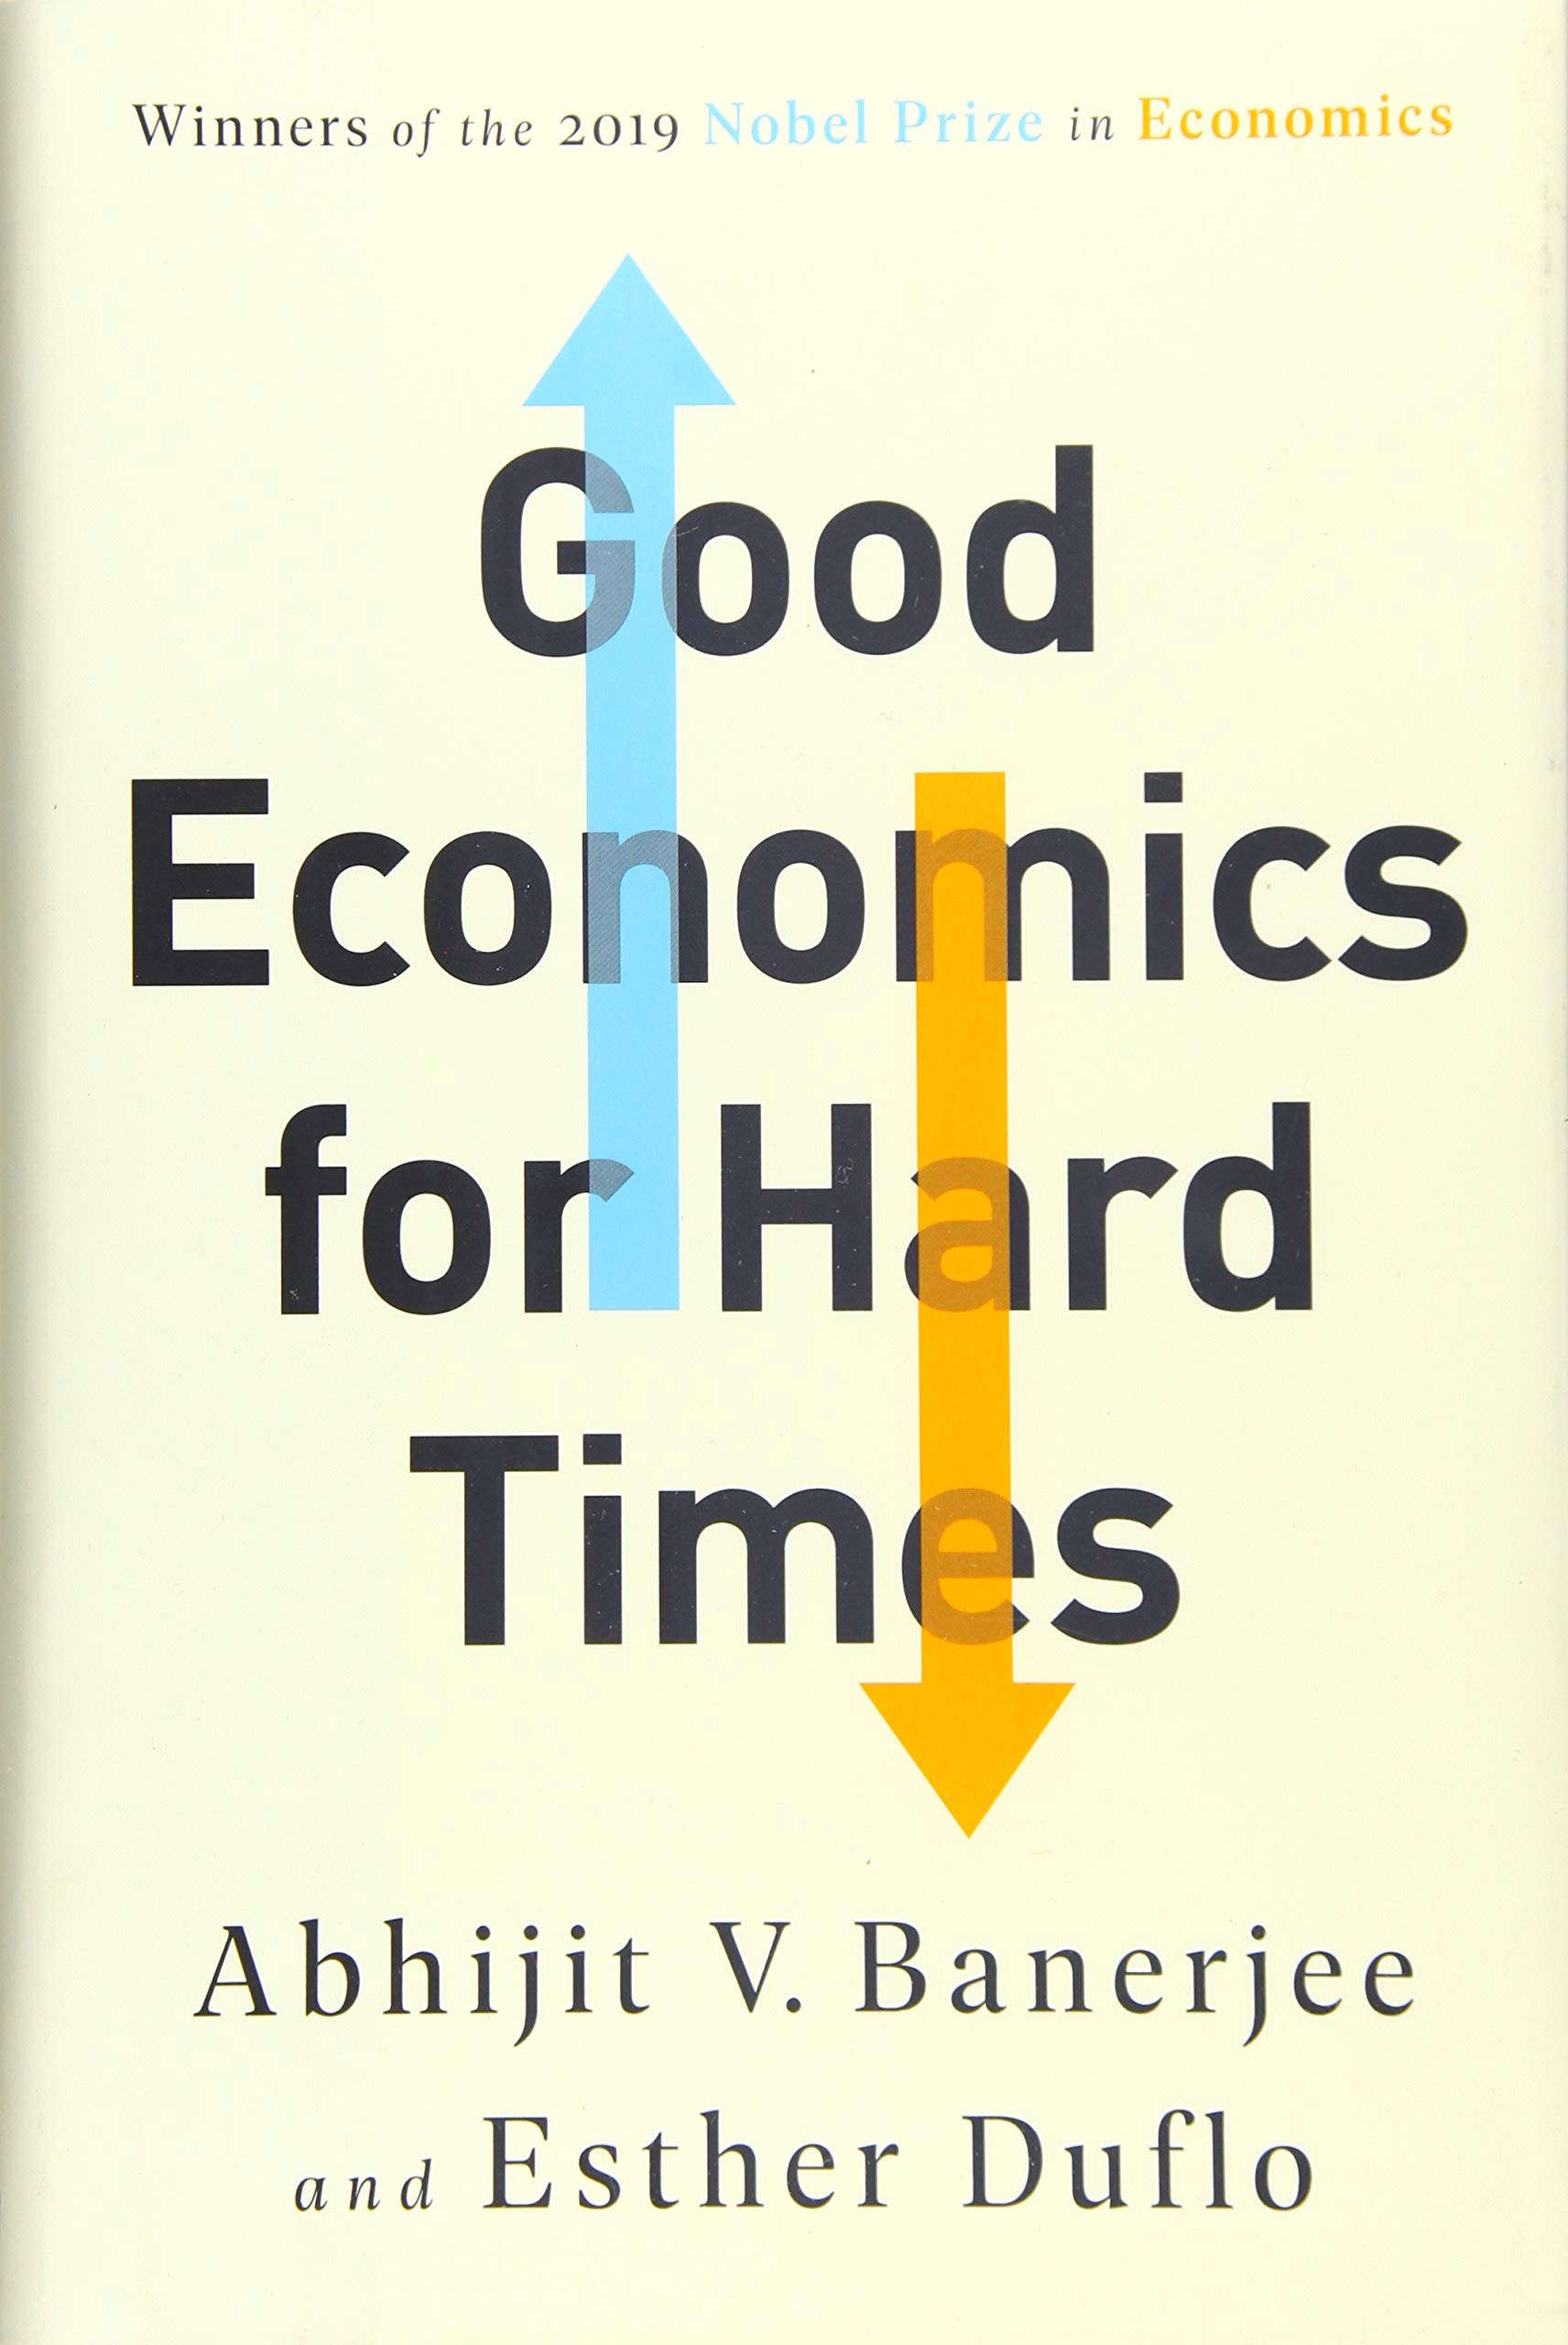 'Good Economics for Hard Times' by Abhijit V. Banerjee and Esther Duflo